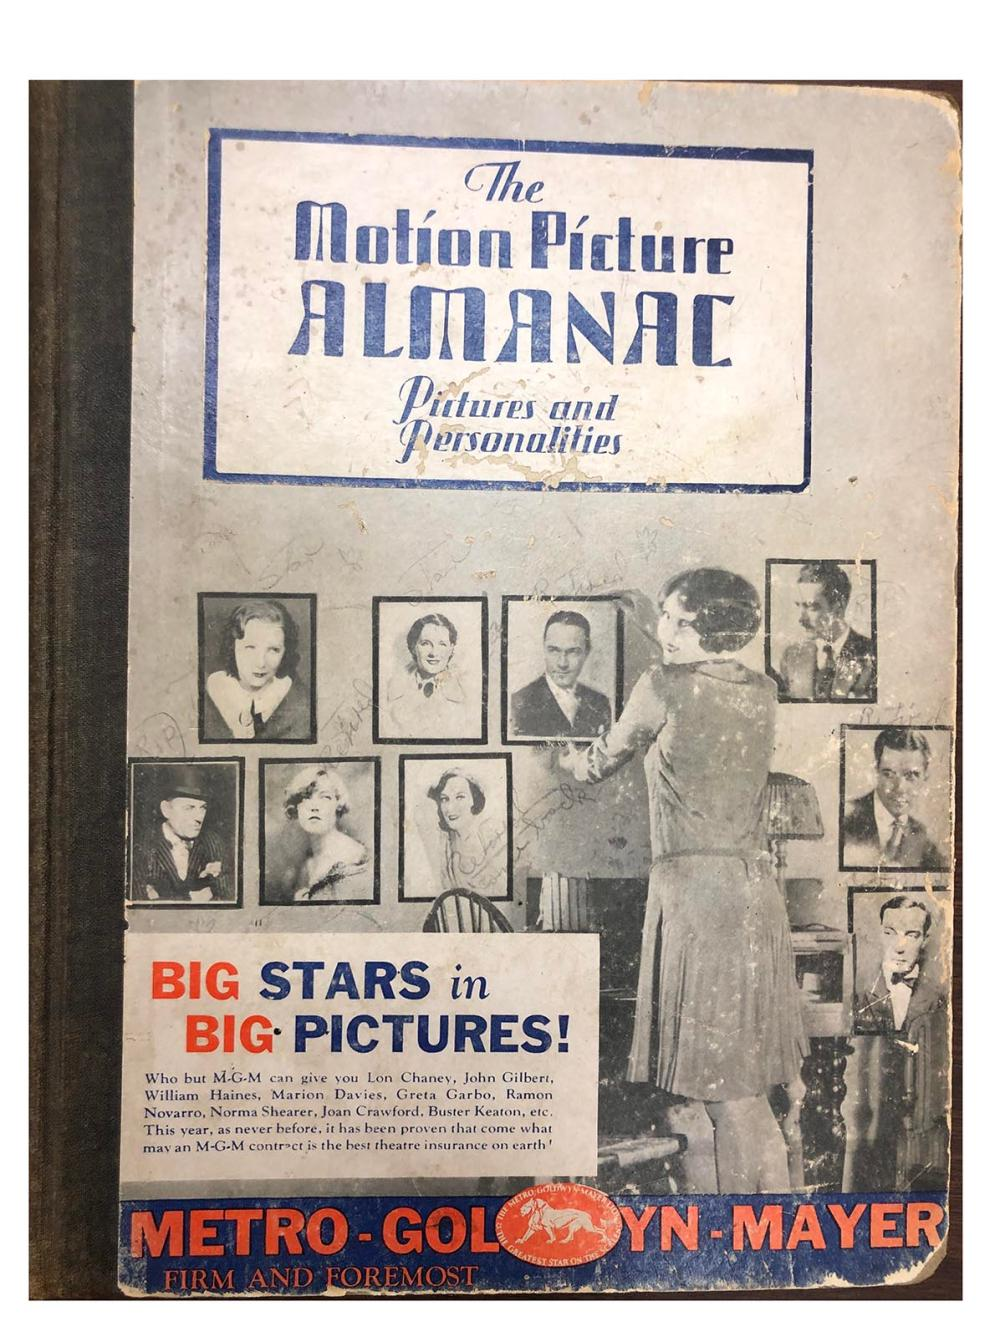 The Motion Picture Almanac vintage hardcover book